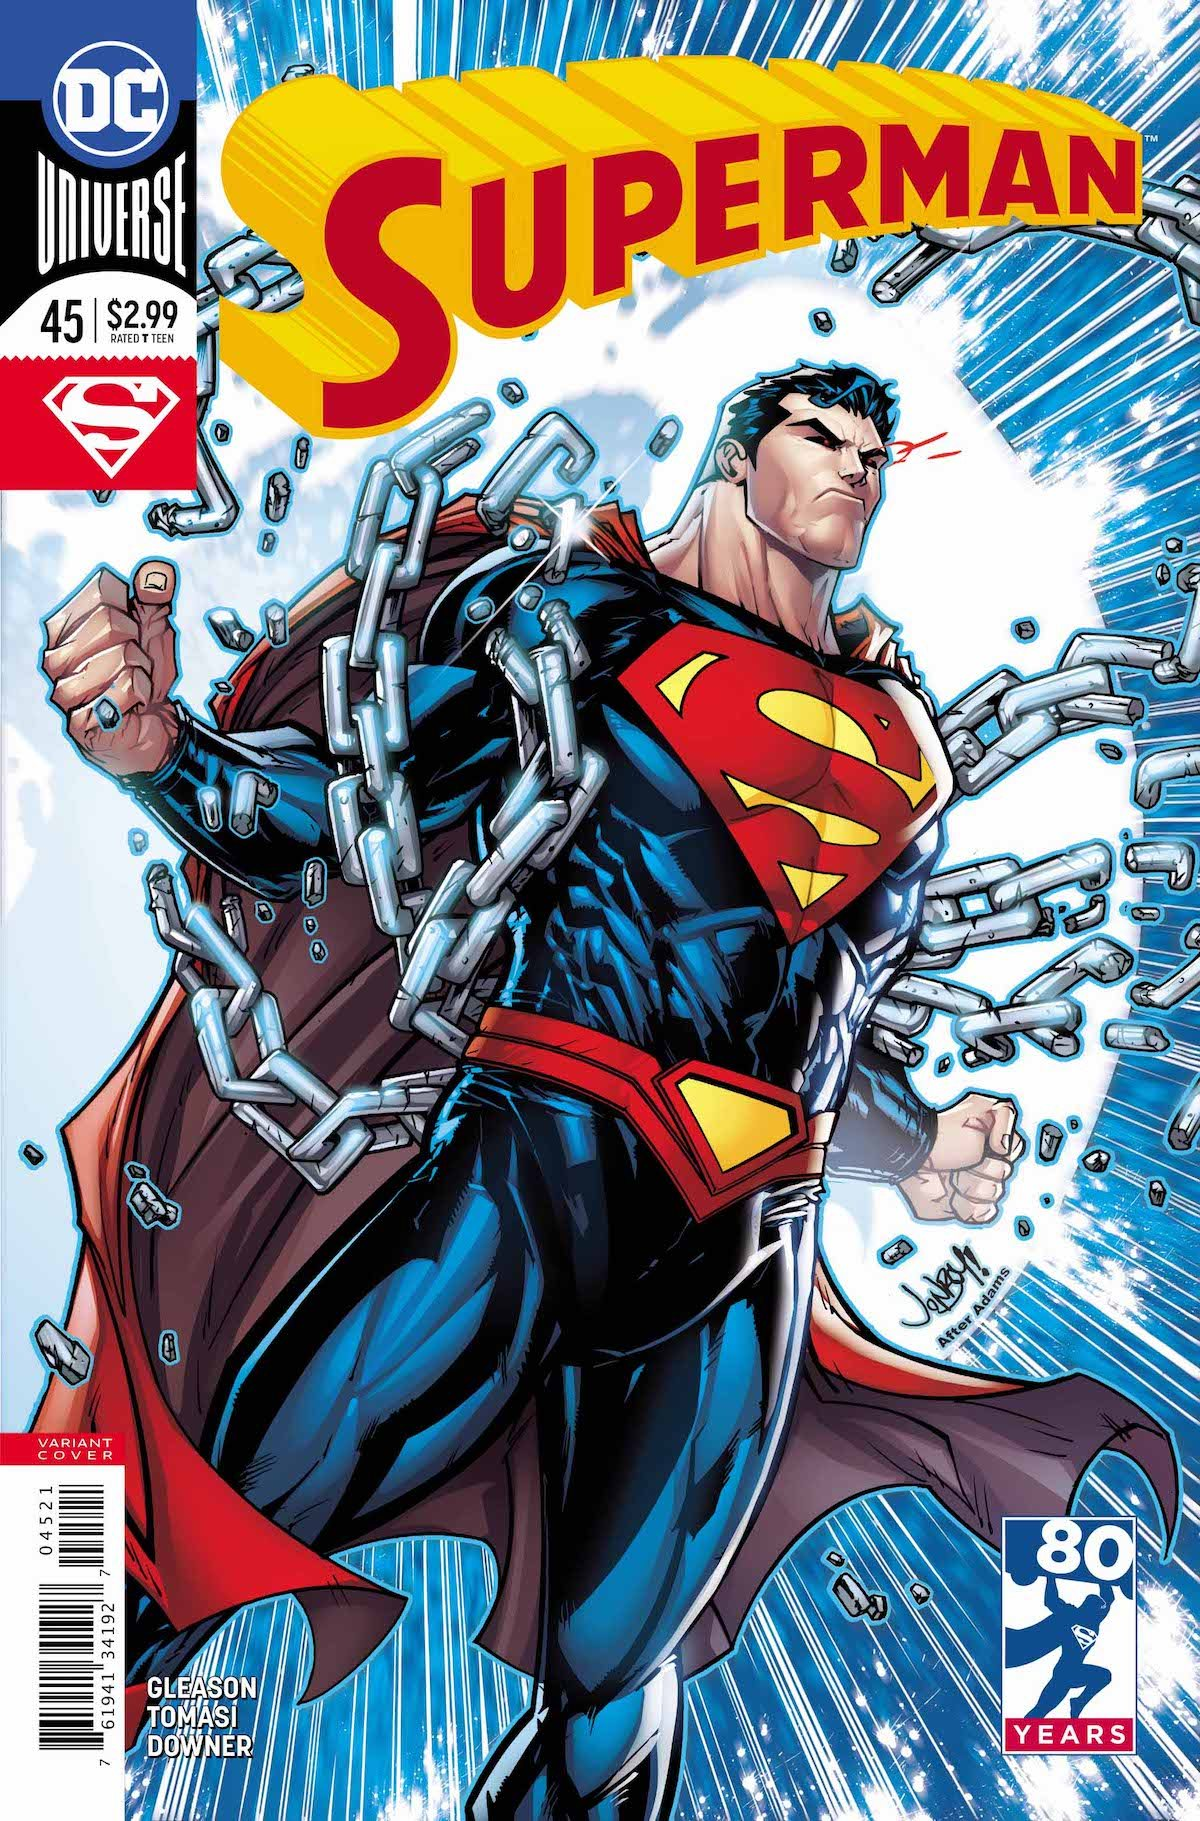 Superman #45 variant cover